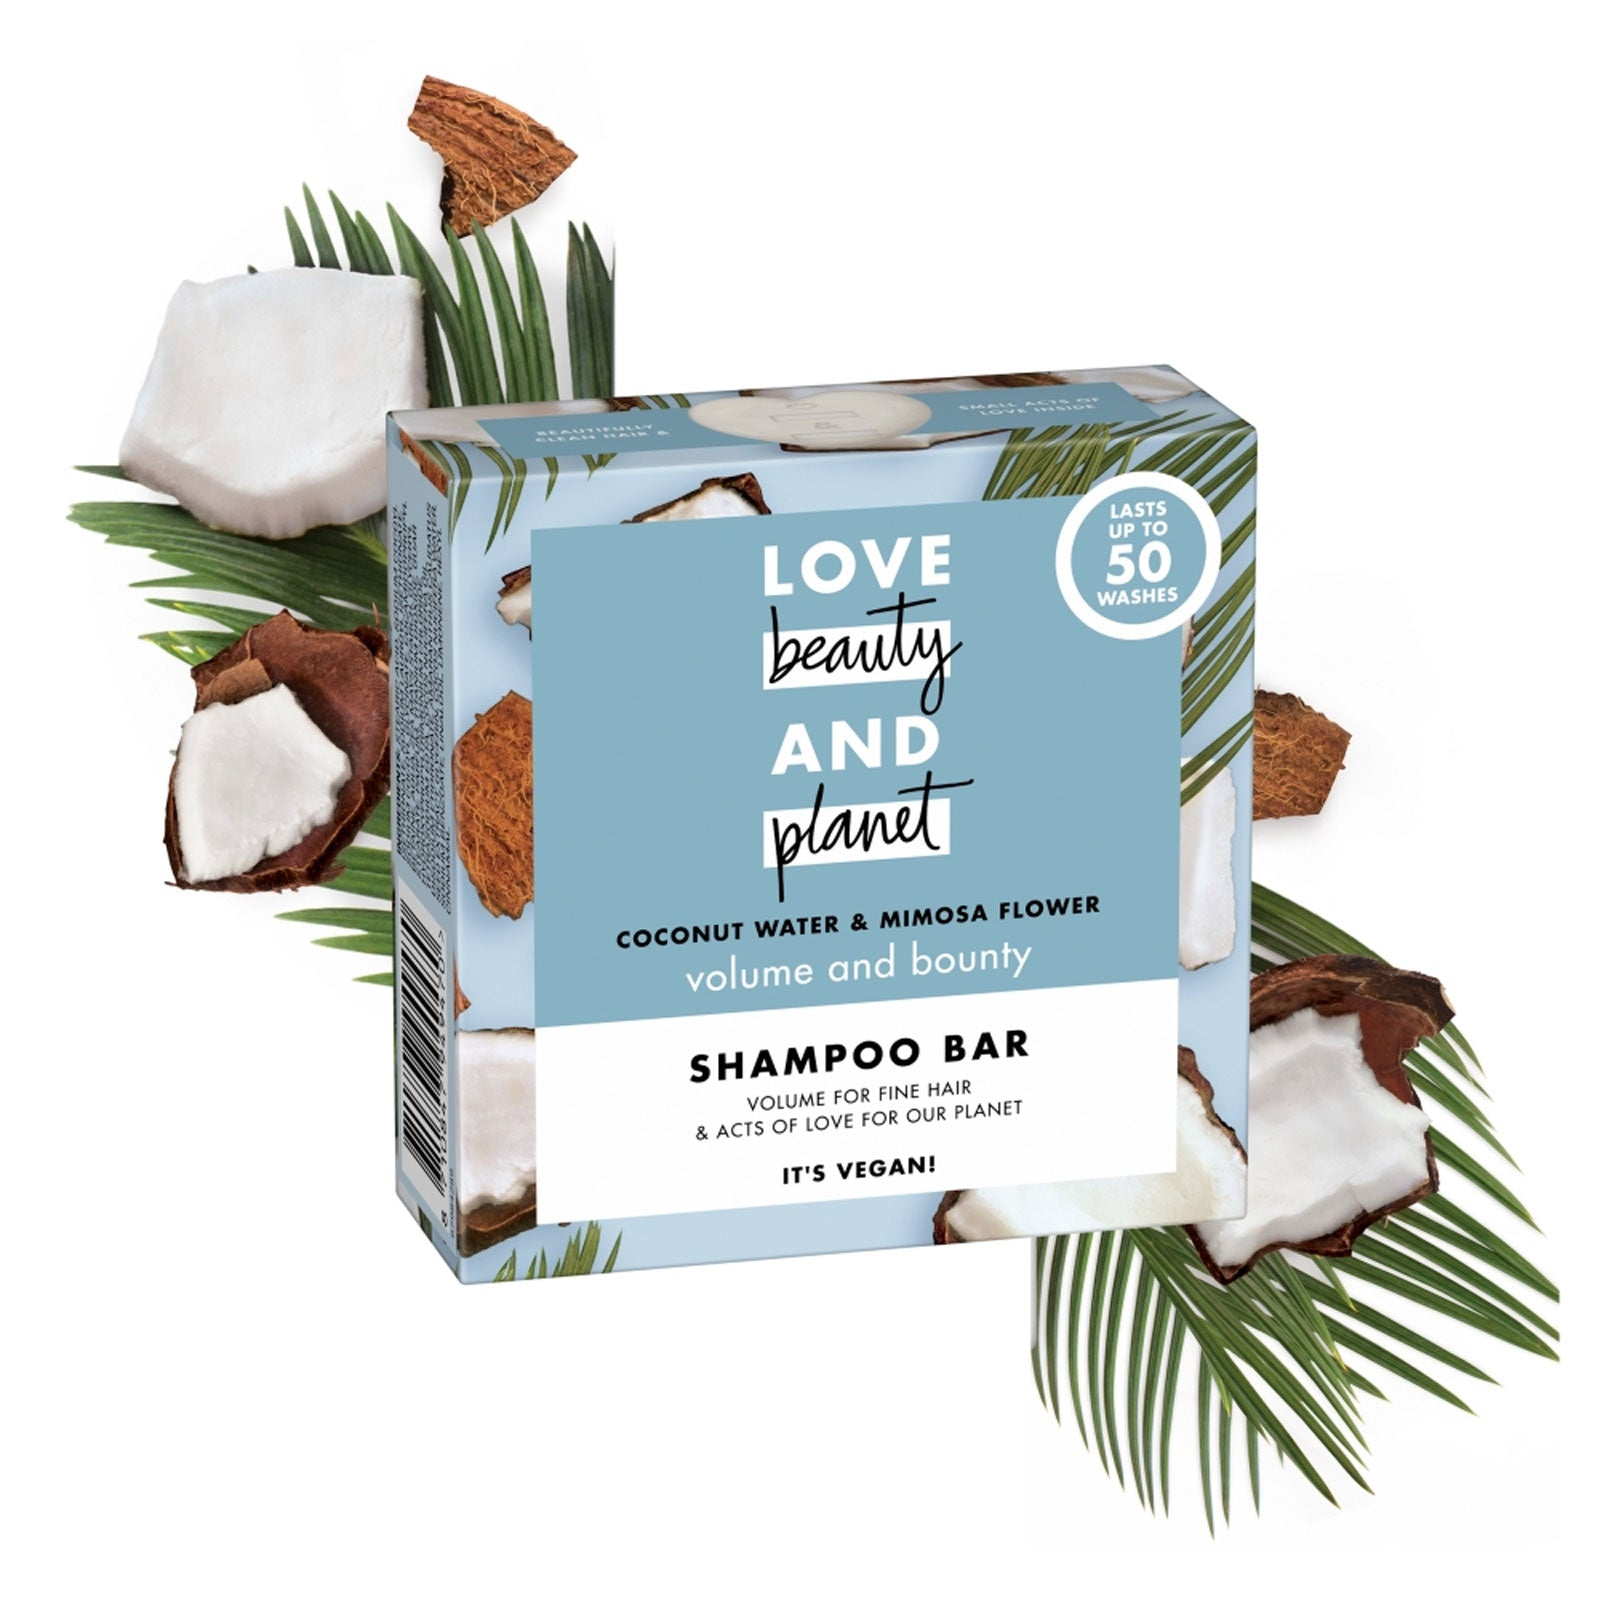 Love Beauty and Planet Volume & Bounty Coconut Water and Mimosa Flower Shampoo Bar 90g